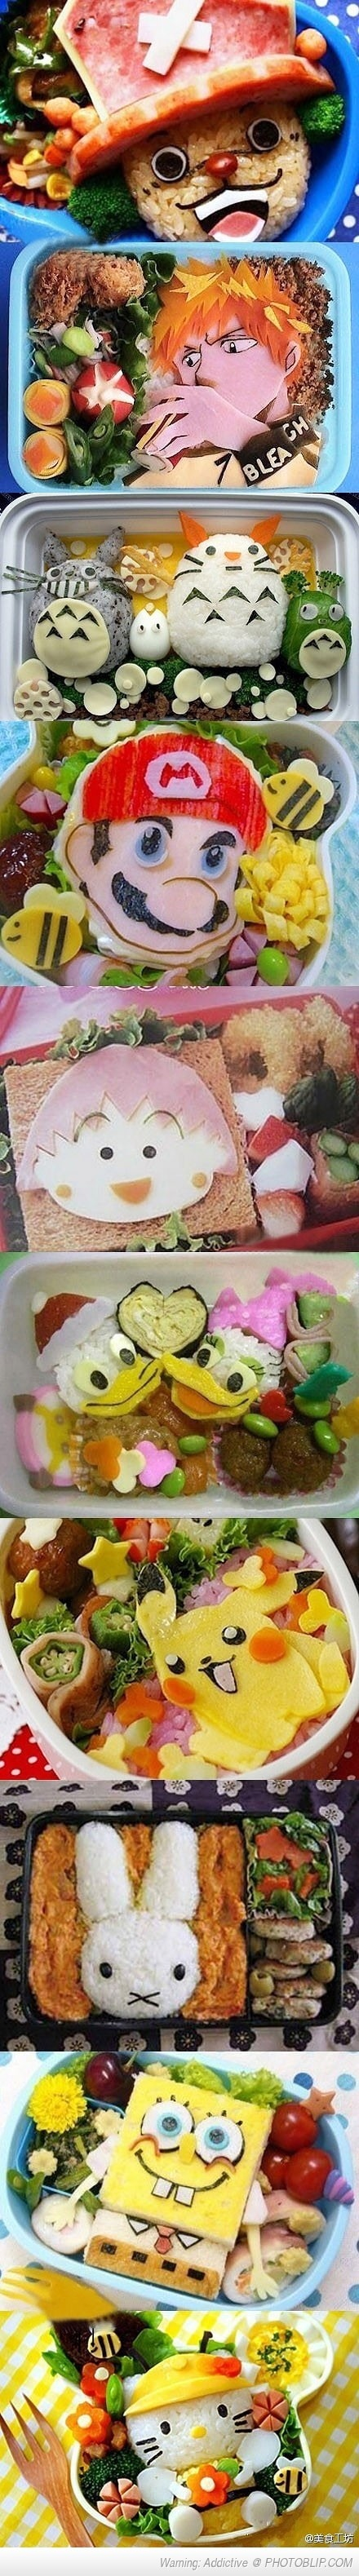 School Lunches That Japanese Moms Made For Their Kids } I don't remember my Mom making lunches like these. Maybe b/c she was past that point & Americanized? :)